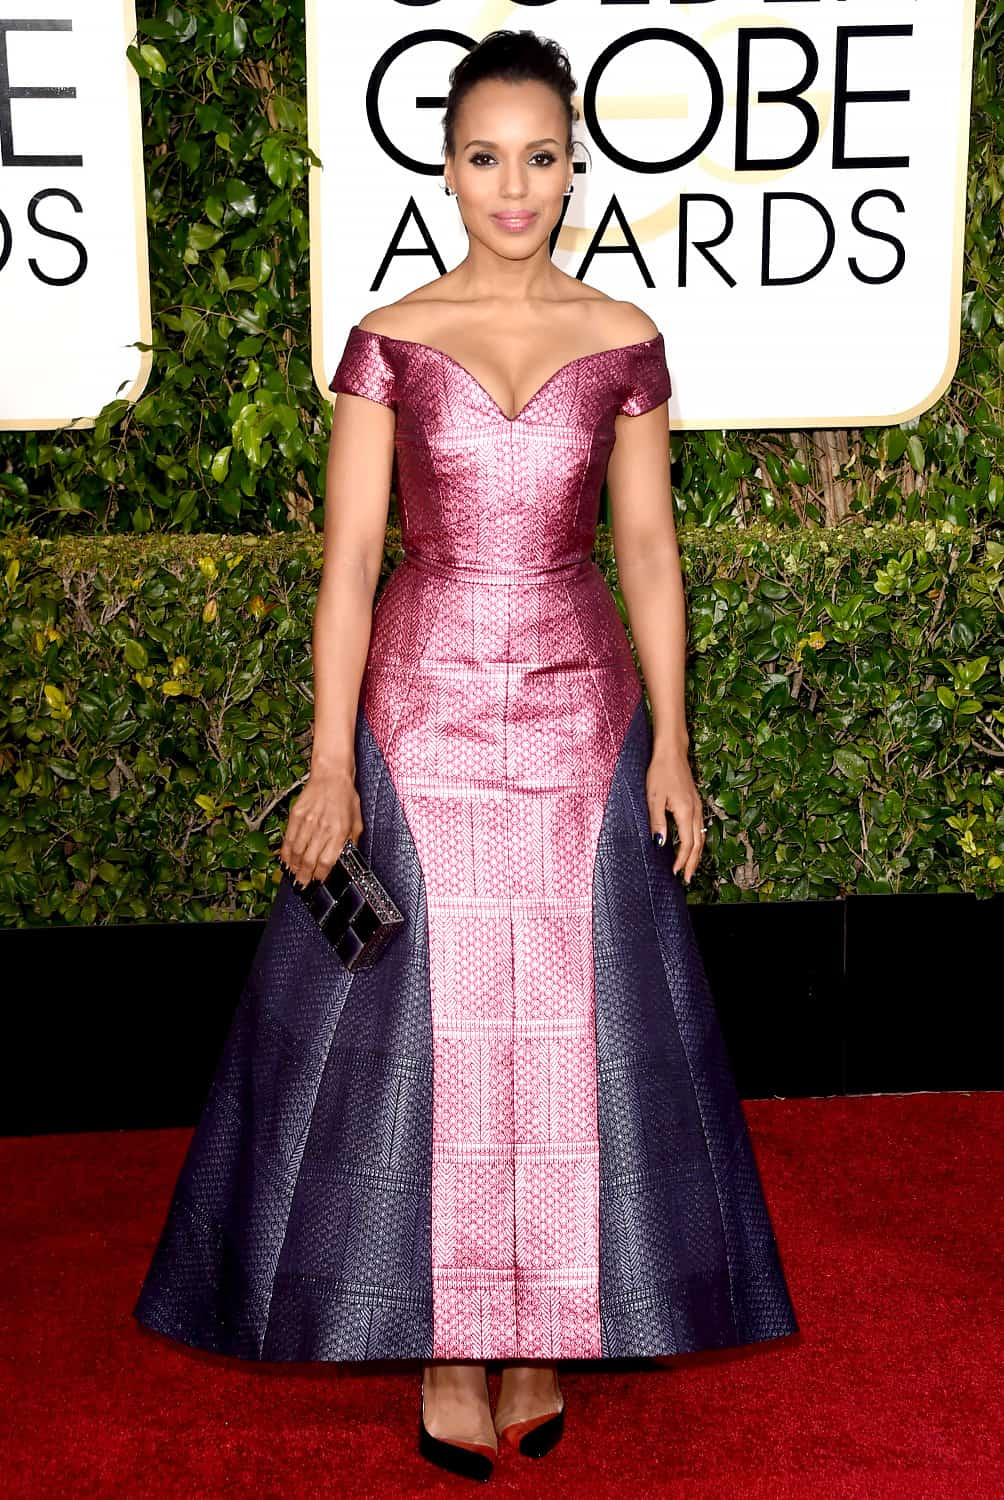 kerry-washington-2015-golden-globes-red-carpet